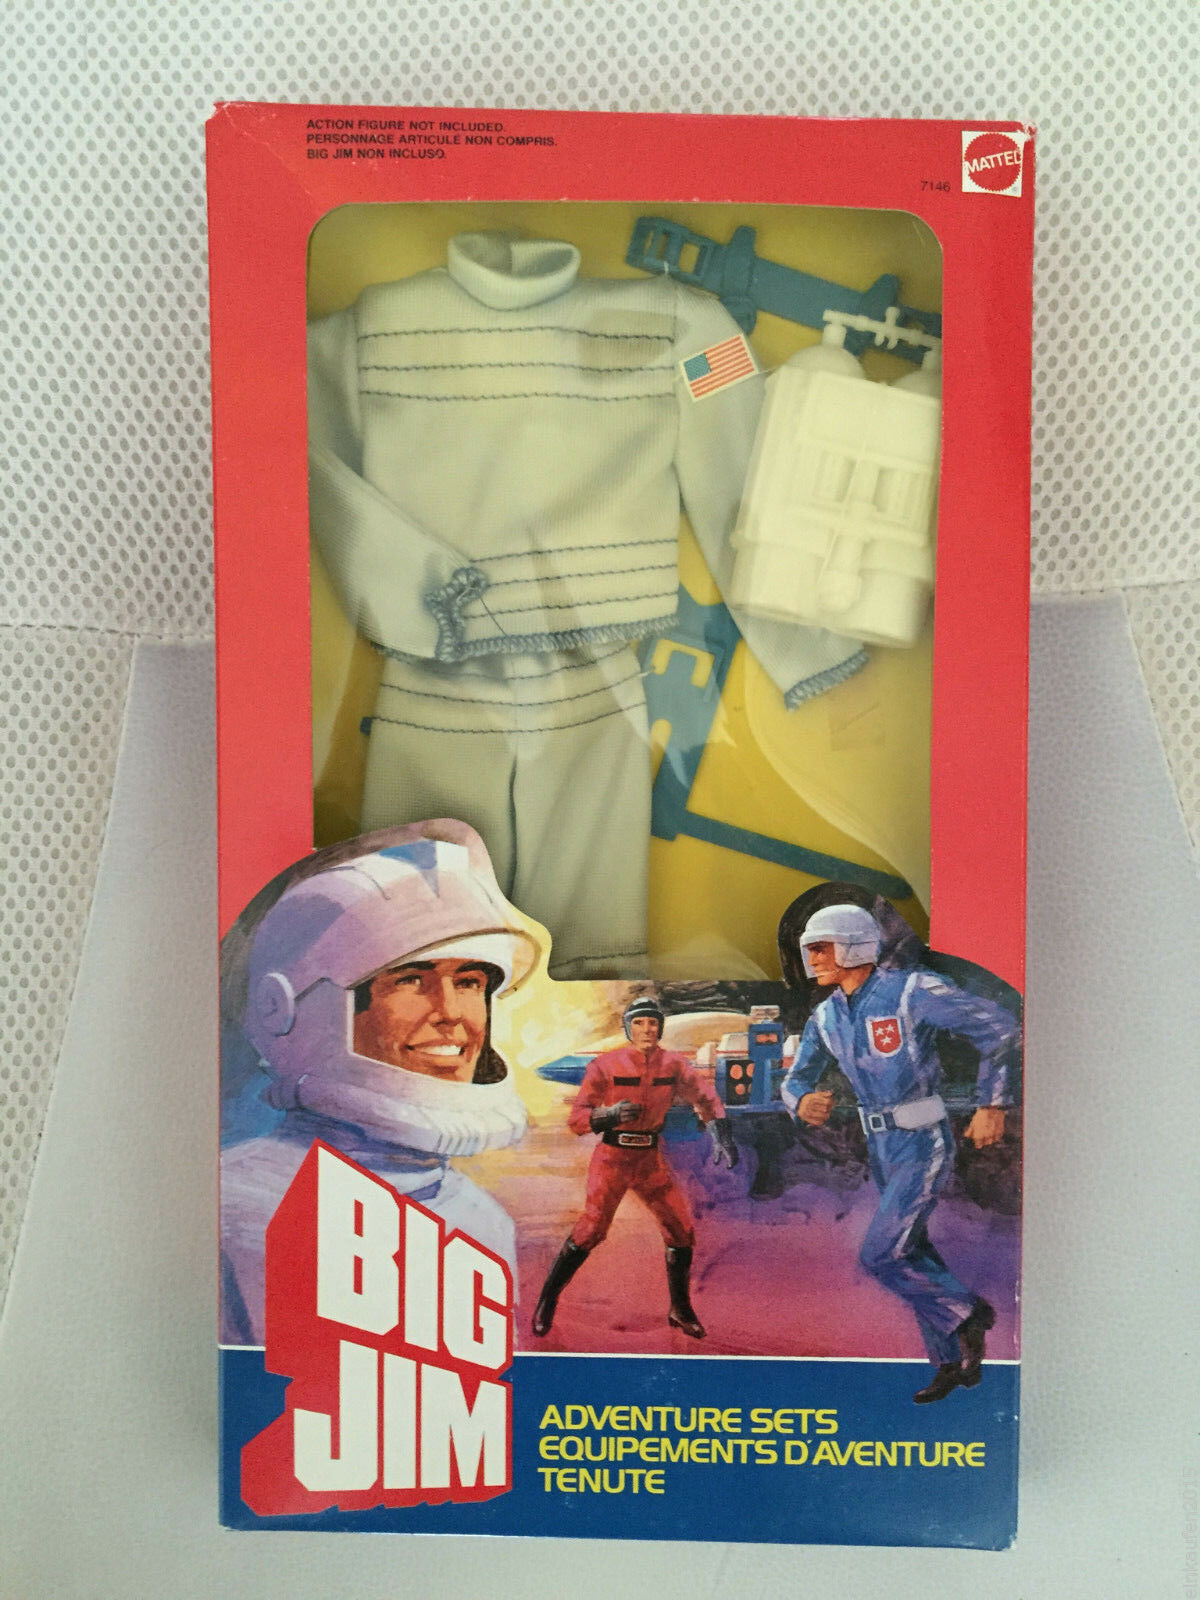 MIB MOC MISB BIG JIM ADVENTURE SETS SETS SETS ASTRONAUT 1984 a2bbd9